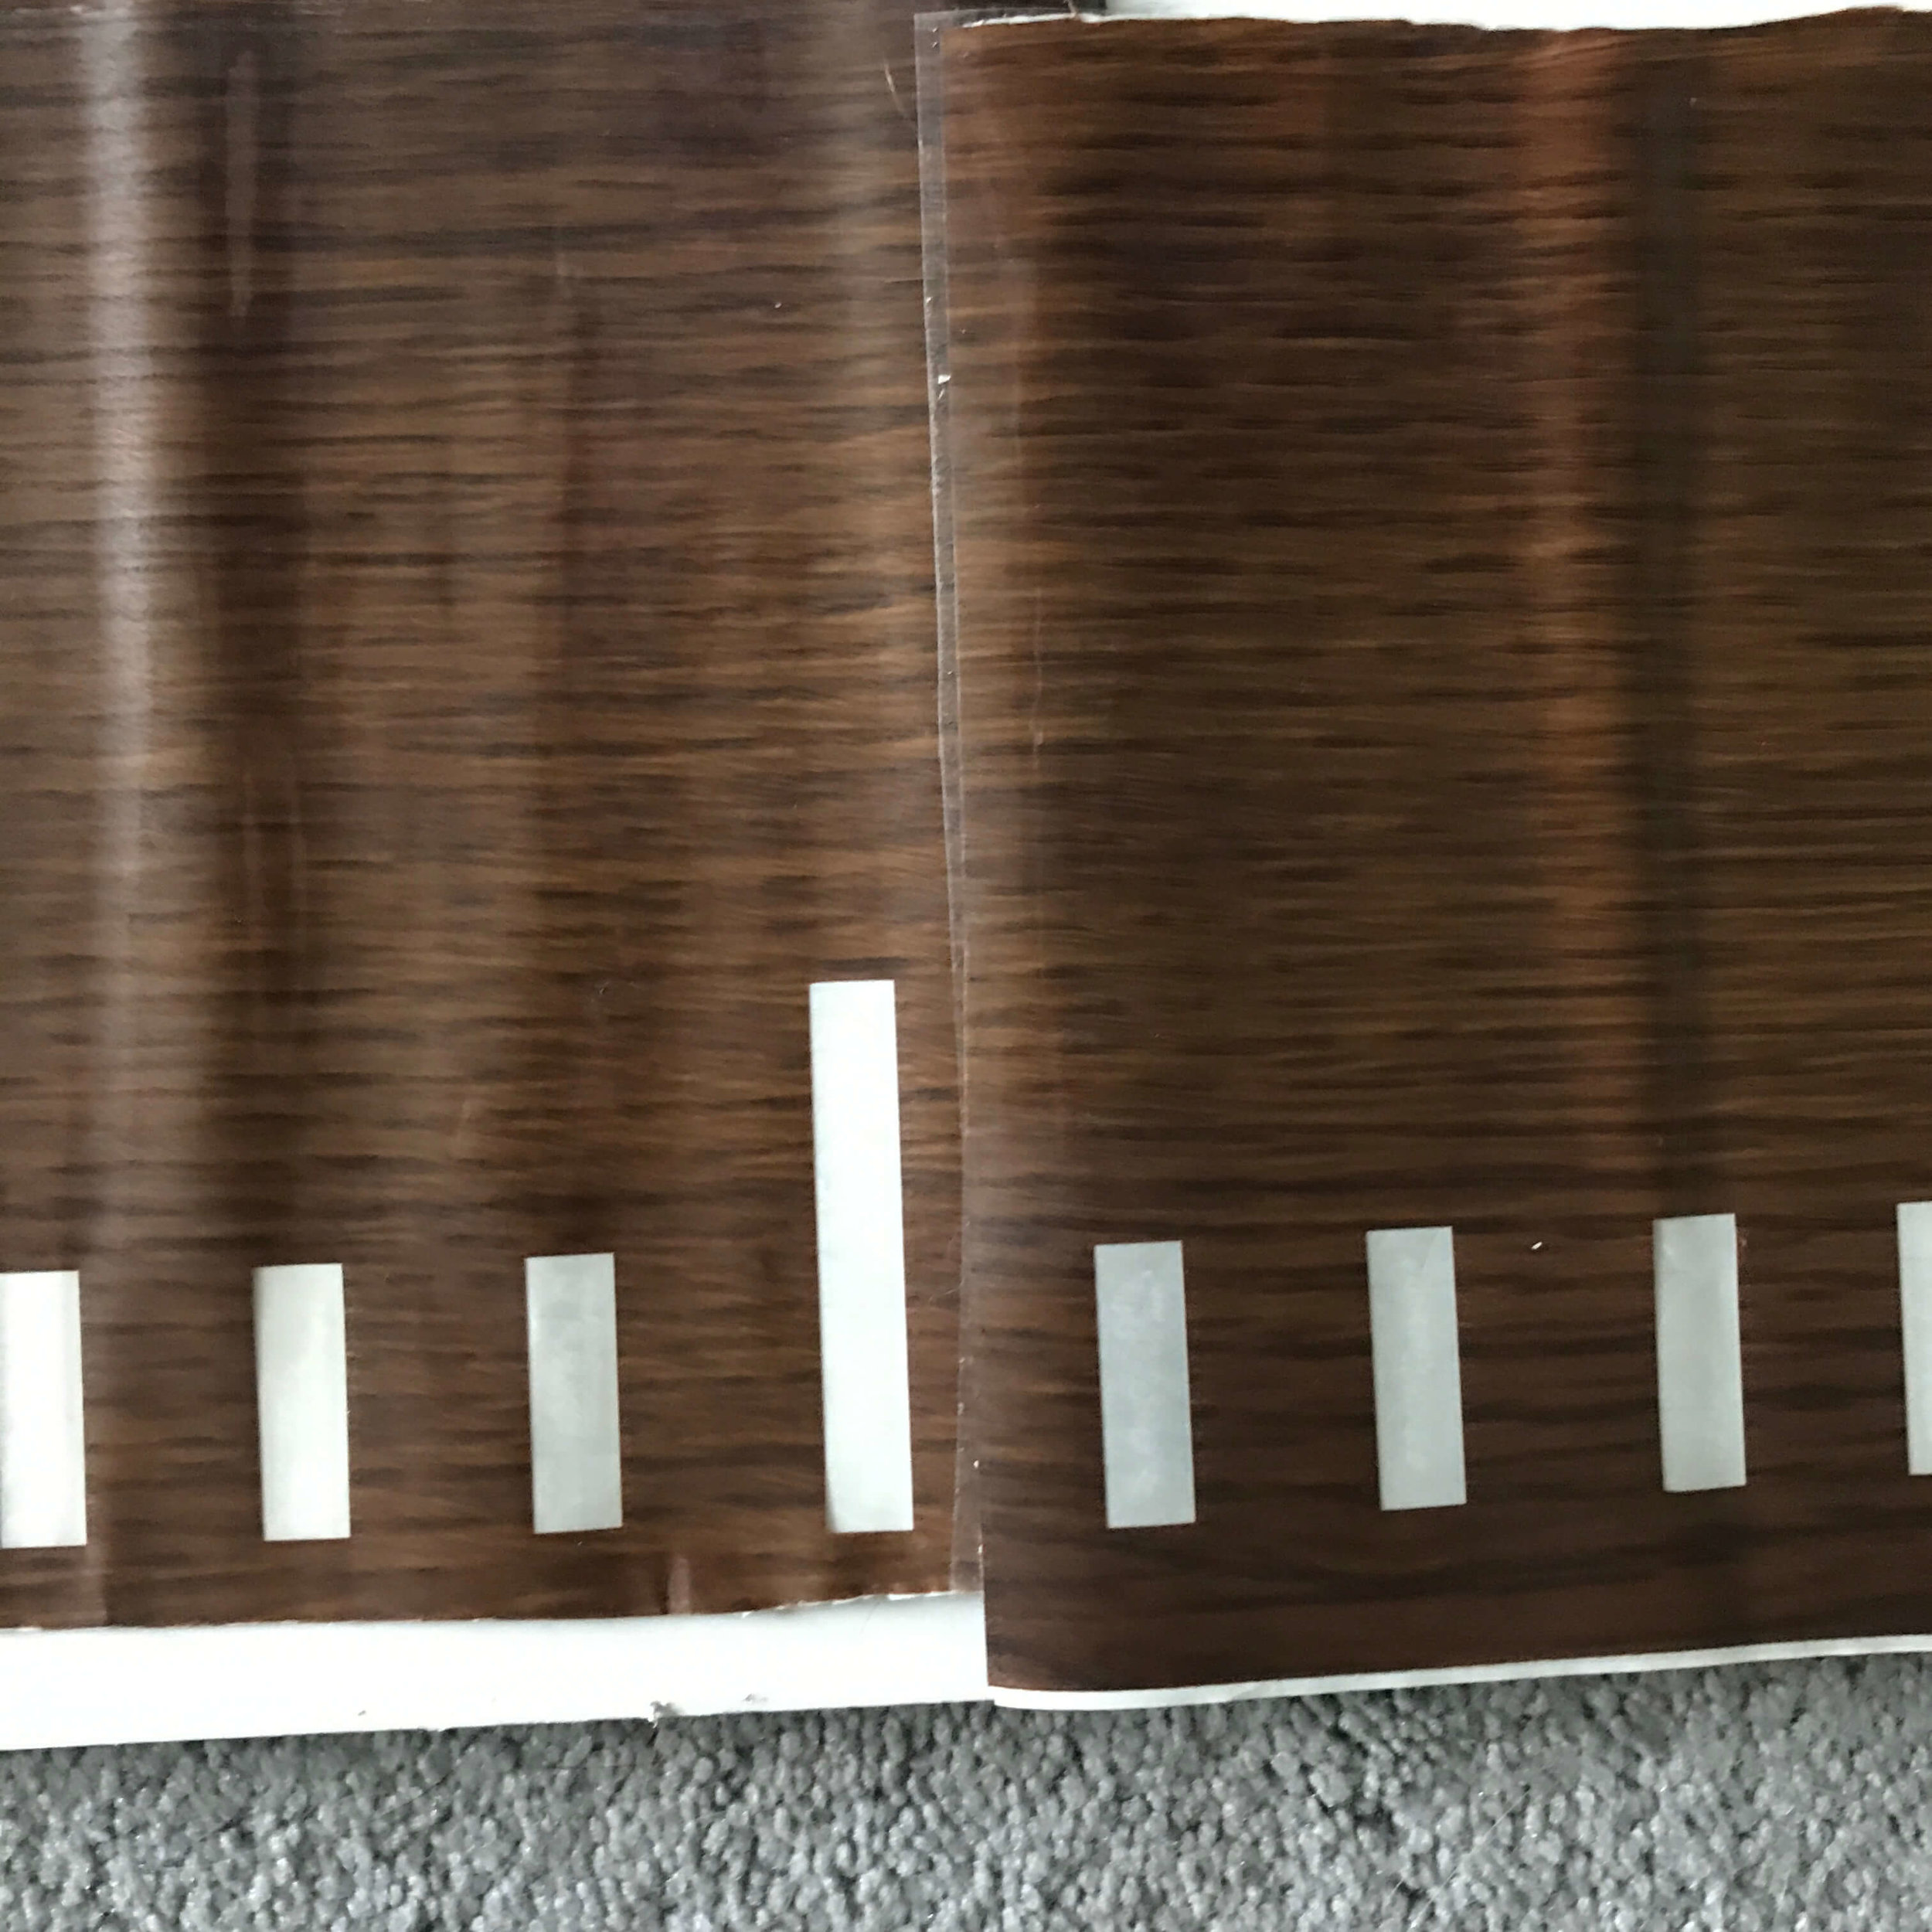 How to make a wooden growth chart